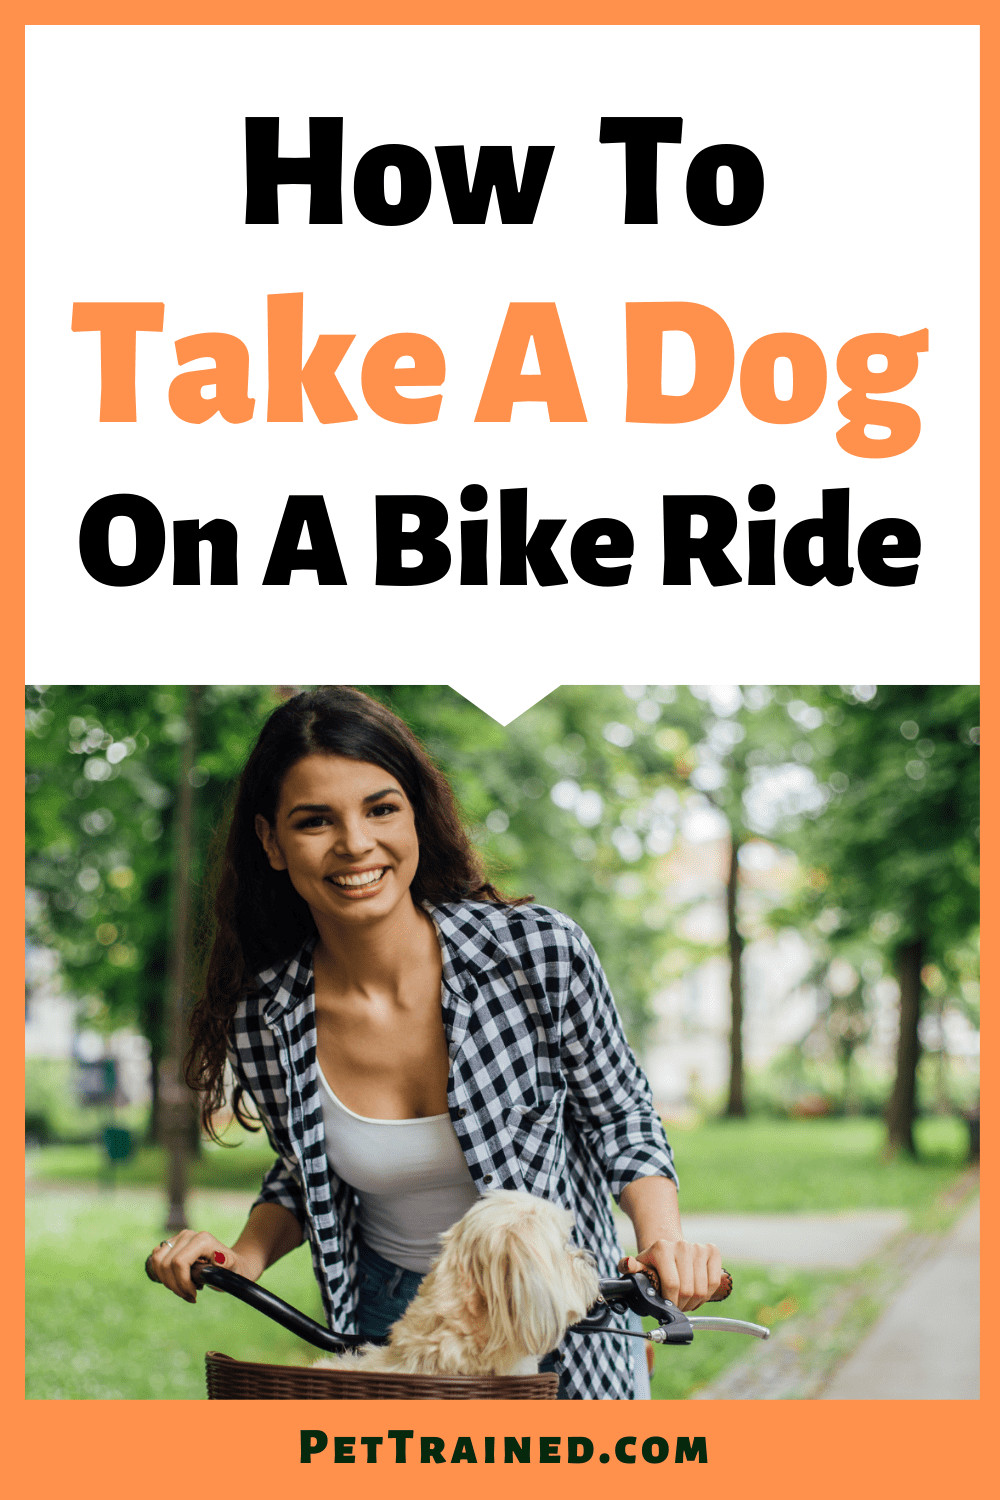 How to take a dog bike riding today